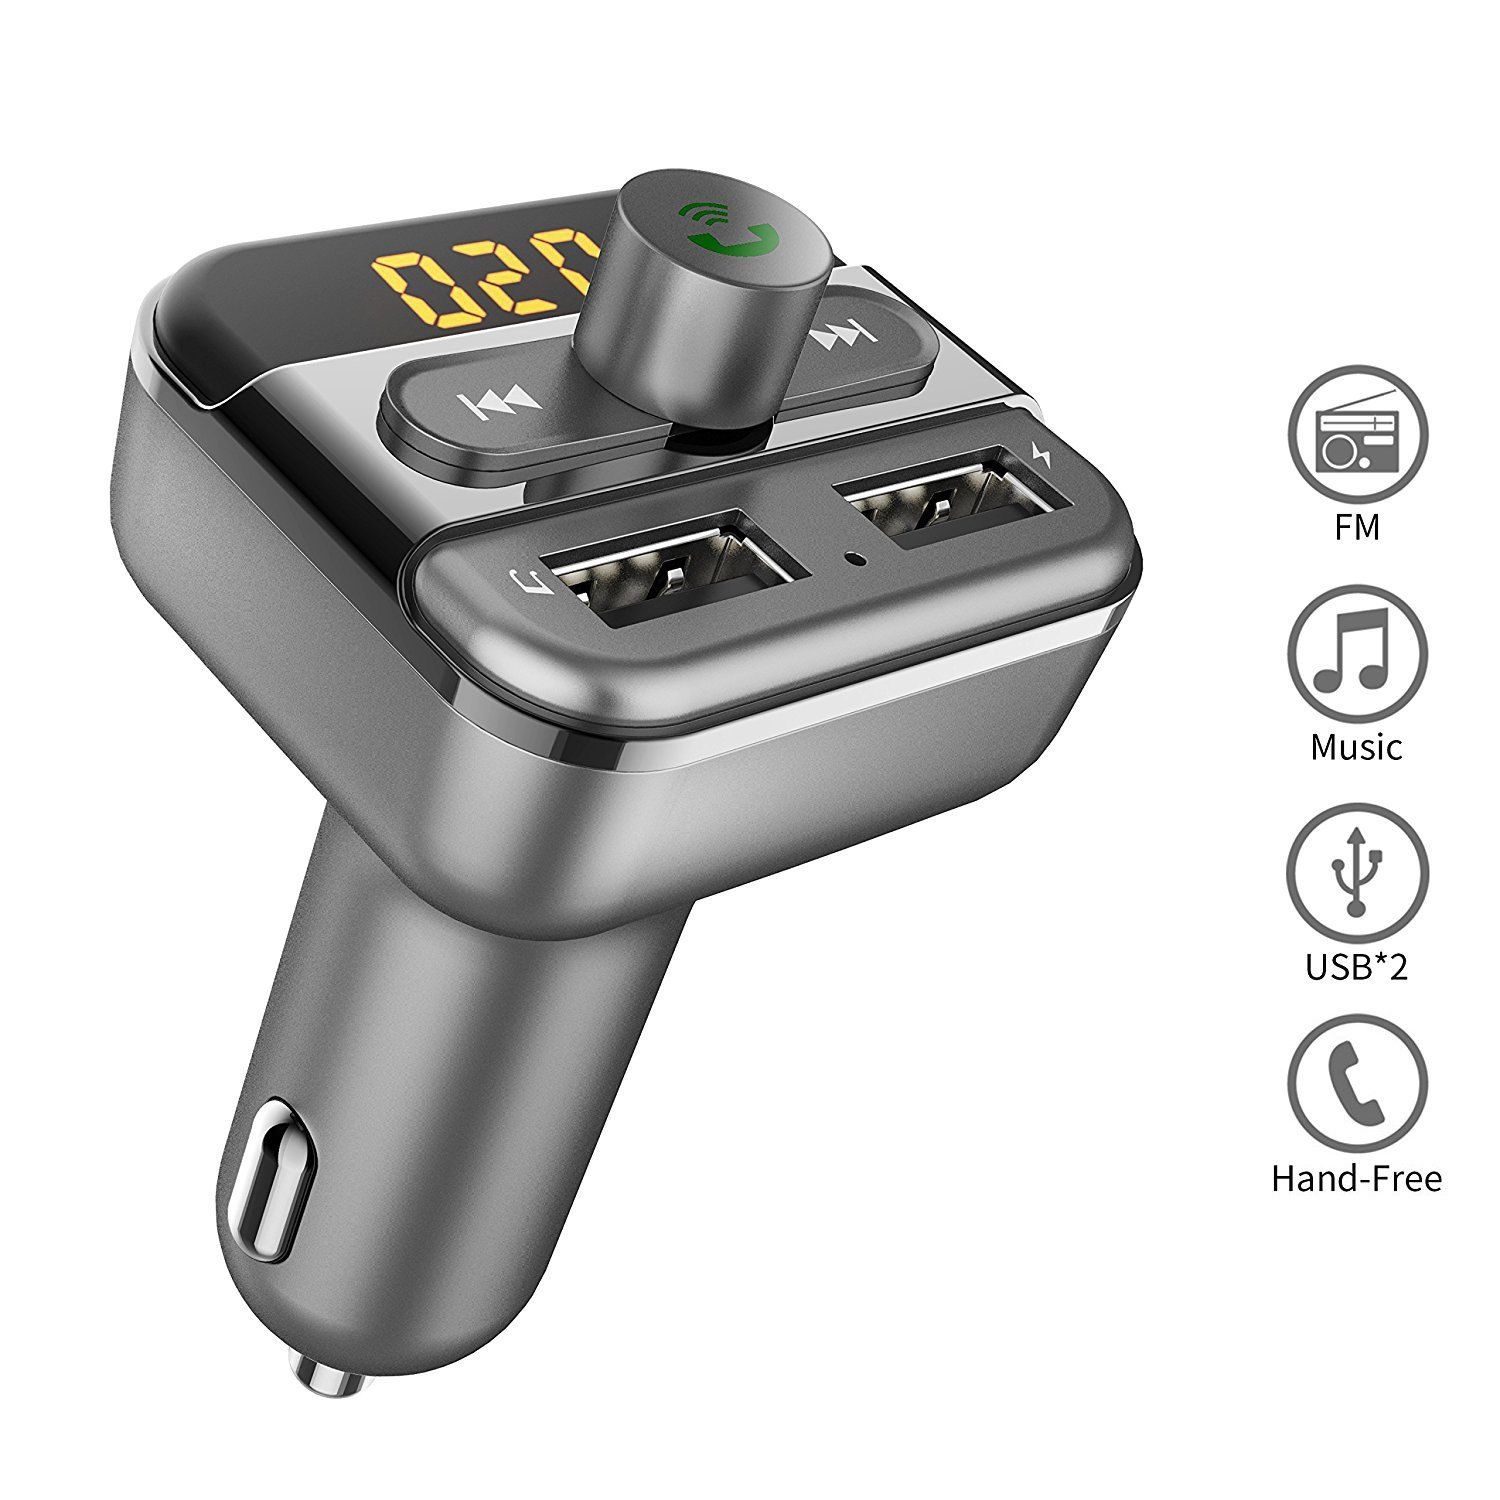 Bluetooth FM Transmitter for Car, TOMPOL Bluetooth FM Radio Adapter Car FM Transmitter, 5V/3.4A Dual USB Ports Car Charger for iPhone Samsung Android Smartphone, Hands-Free Calling, U-dish MP3 Player